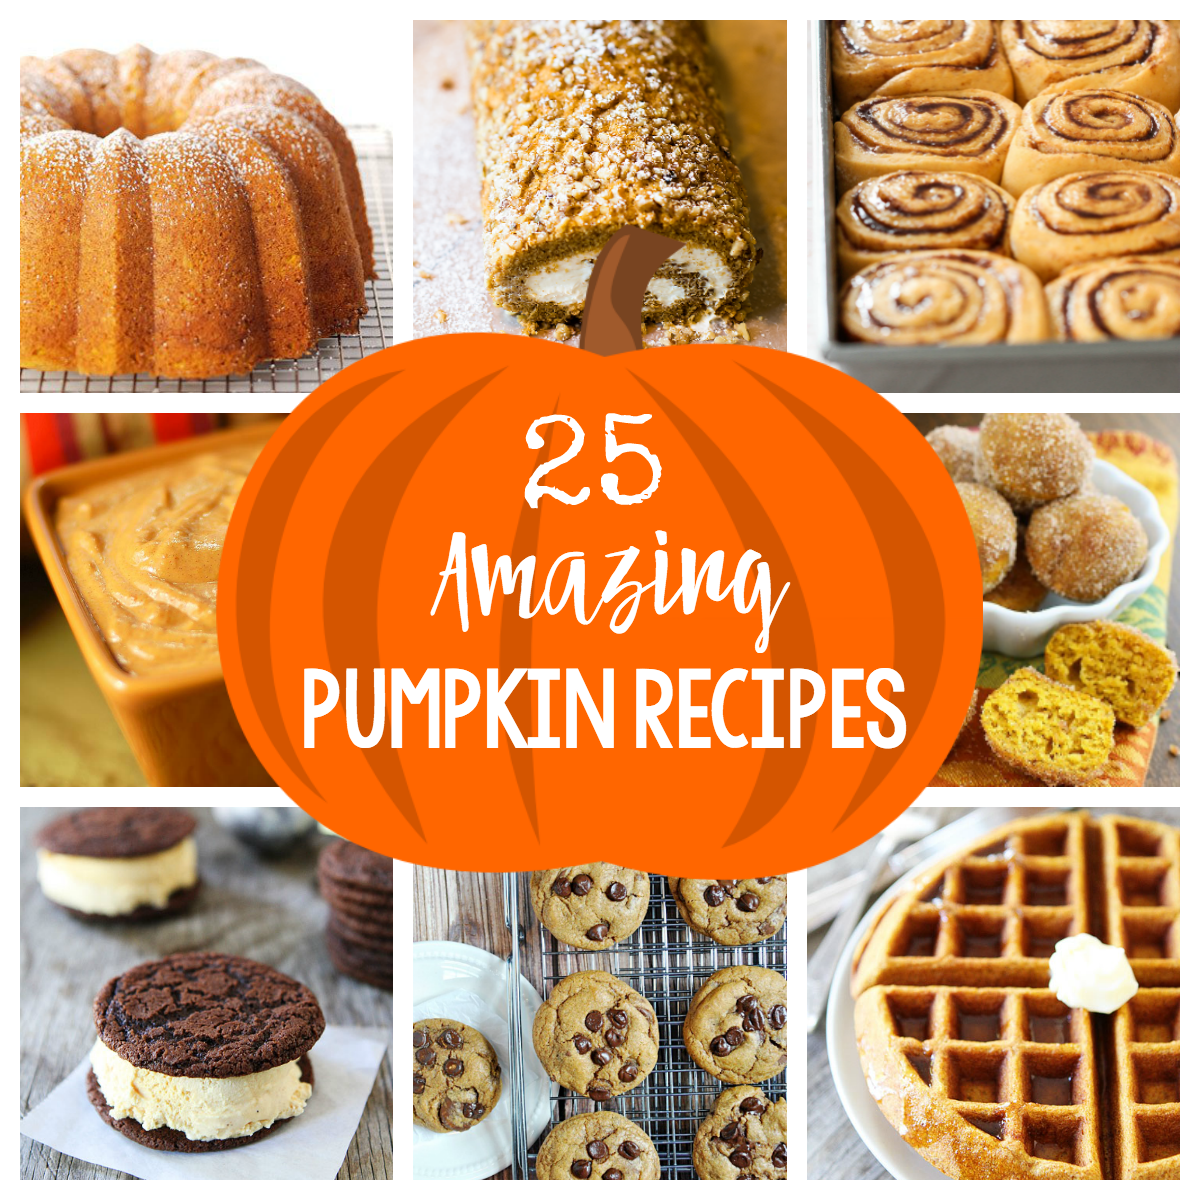 Best Pumpkin Recipes-You will love baking these amazing pumpkin recipes this Fall.